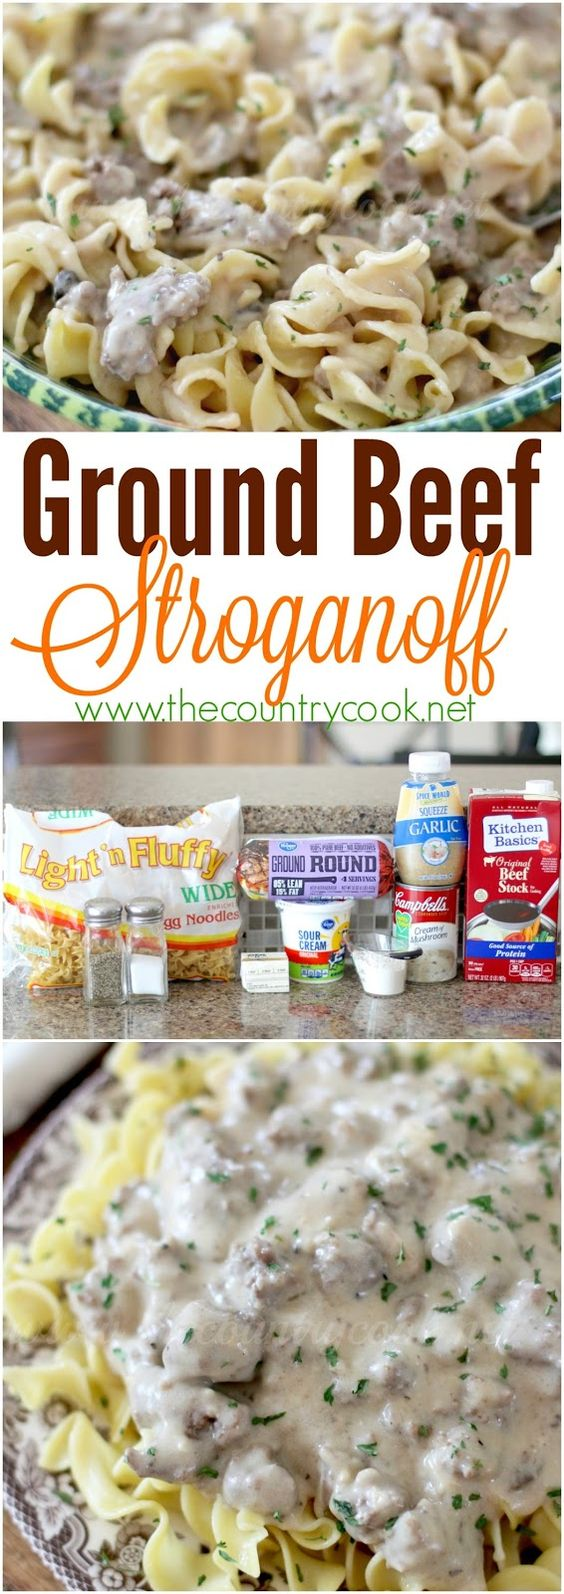 Ground Beef Stroganoff recipe from The Country Cook. One of our favorite dinners and it's ready in 25 minutes!